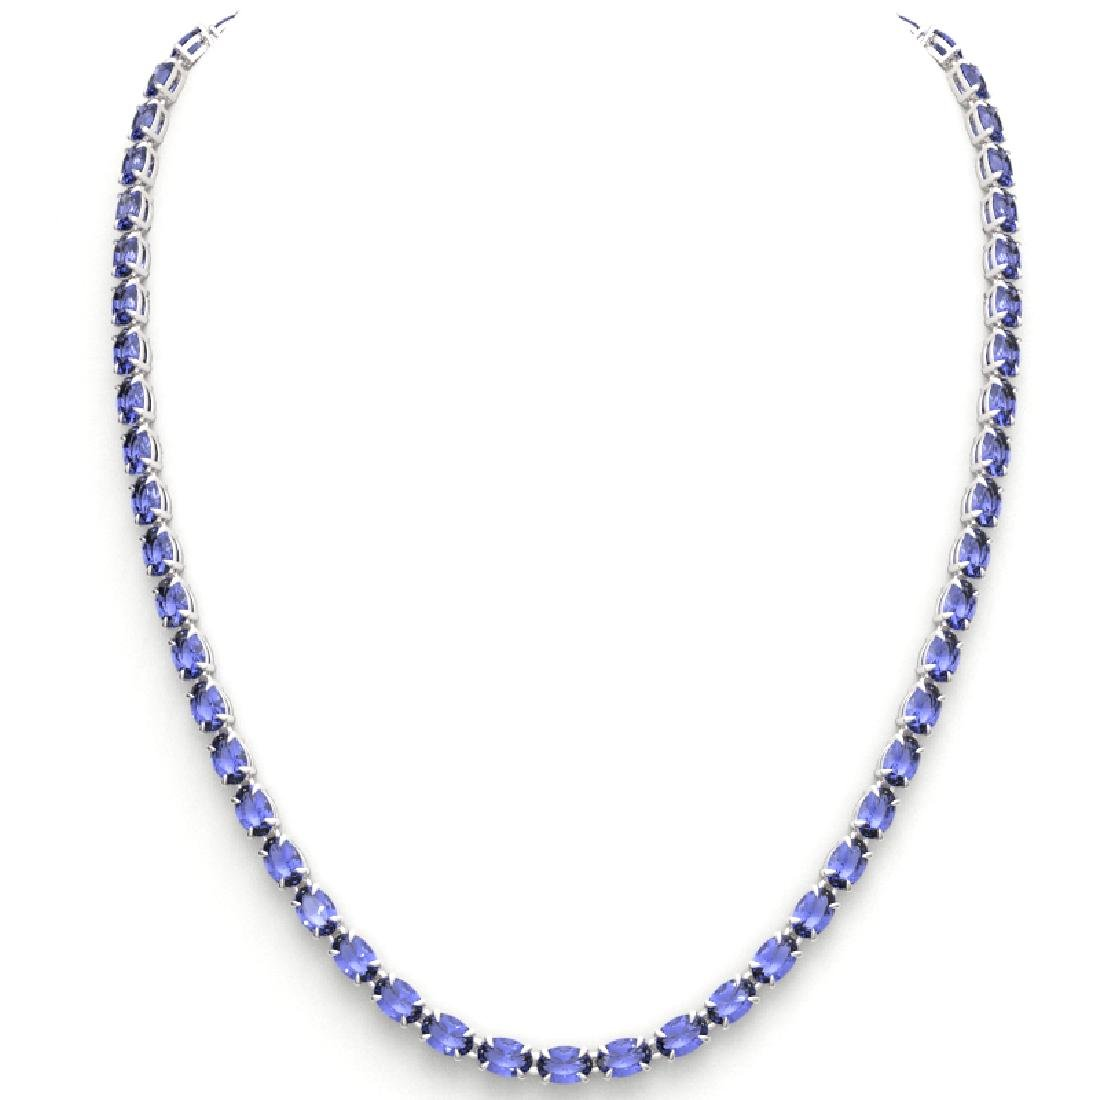 40 CTW Tanzanite Eternity Tennis Necklace 14K White - 3